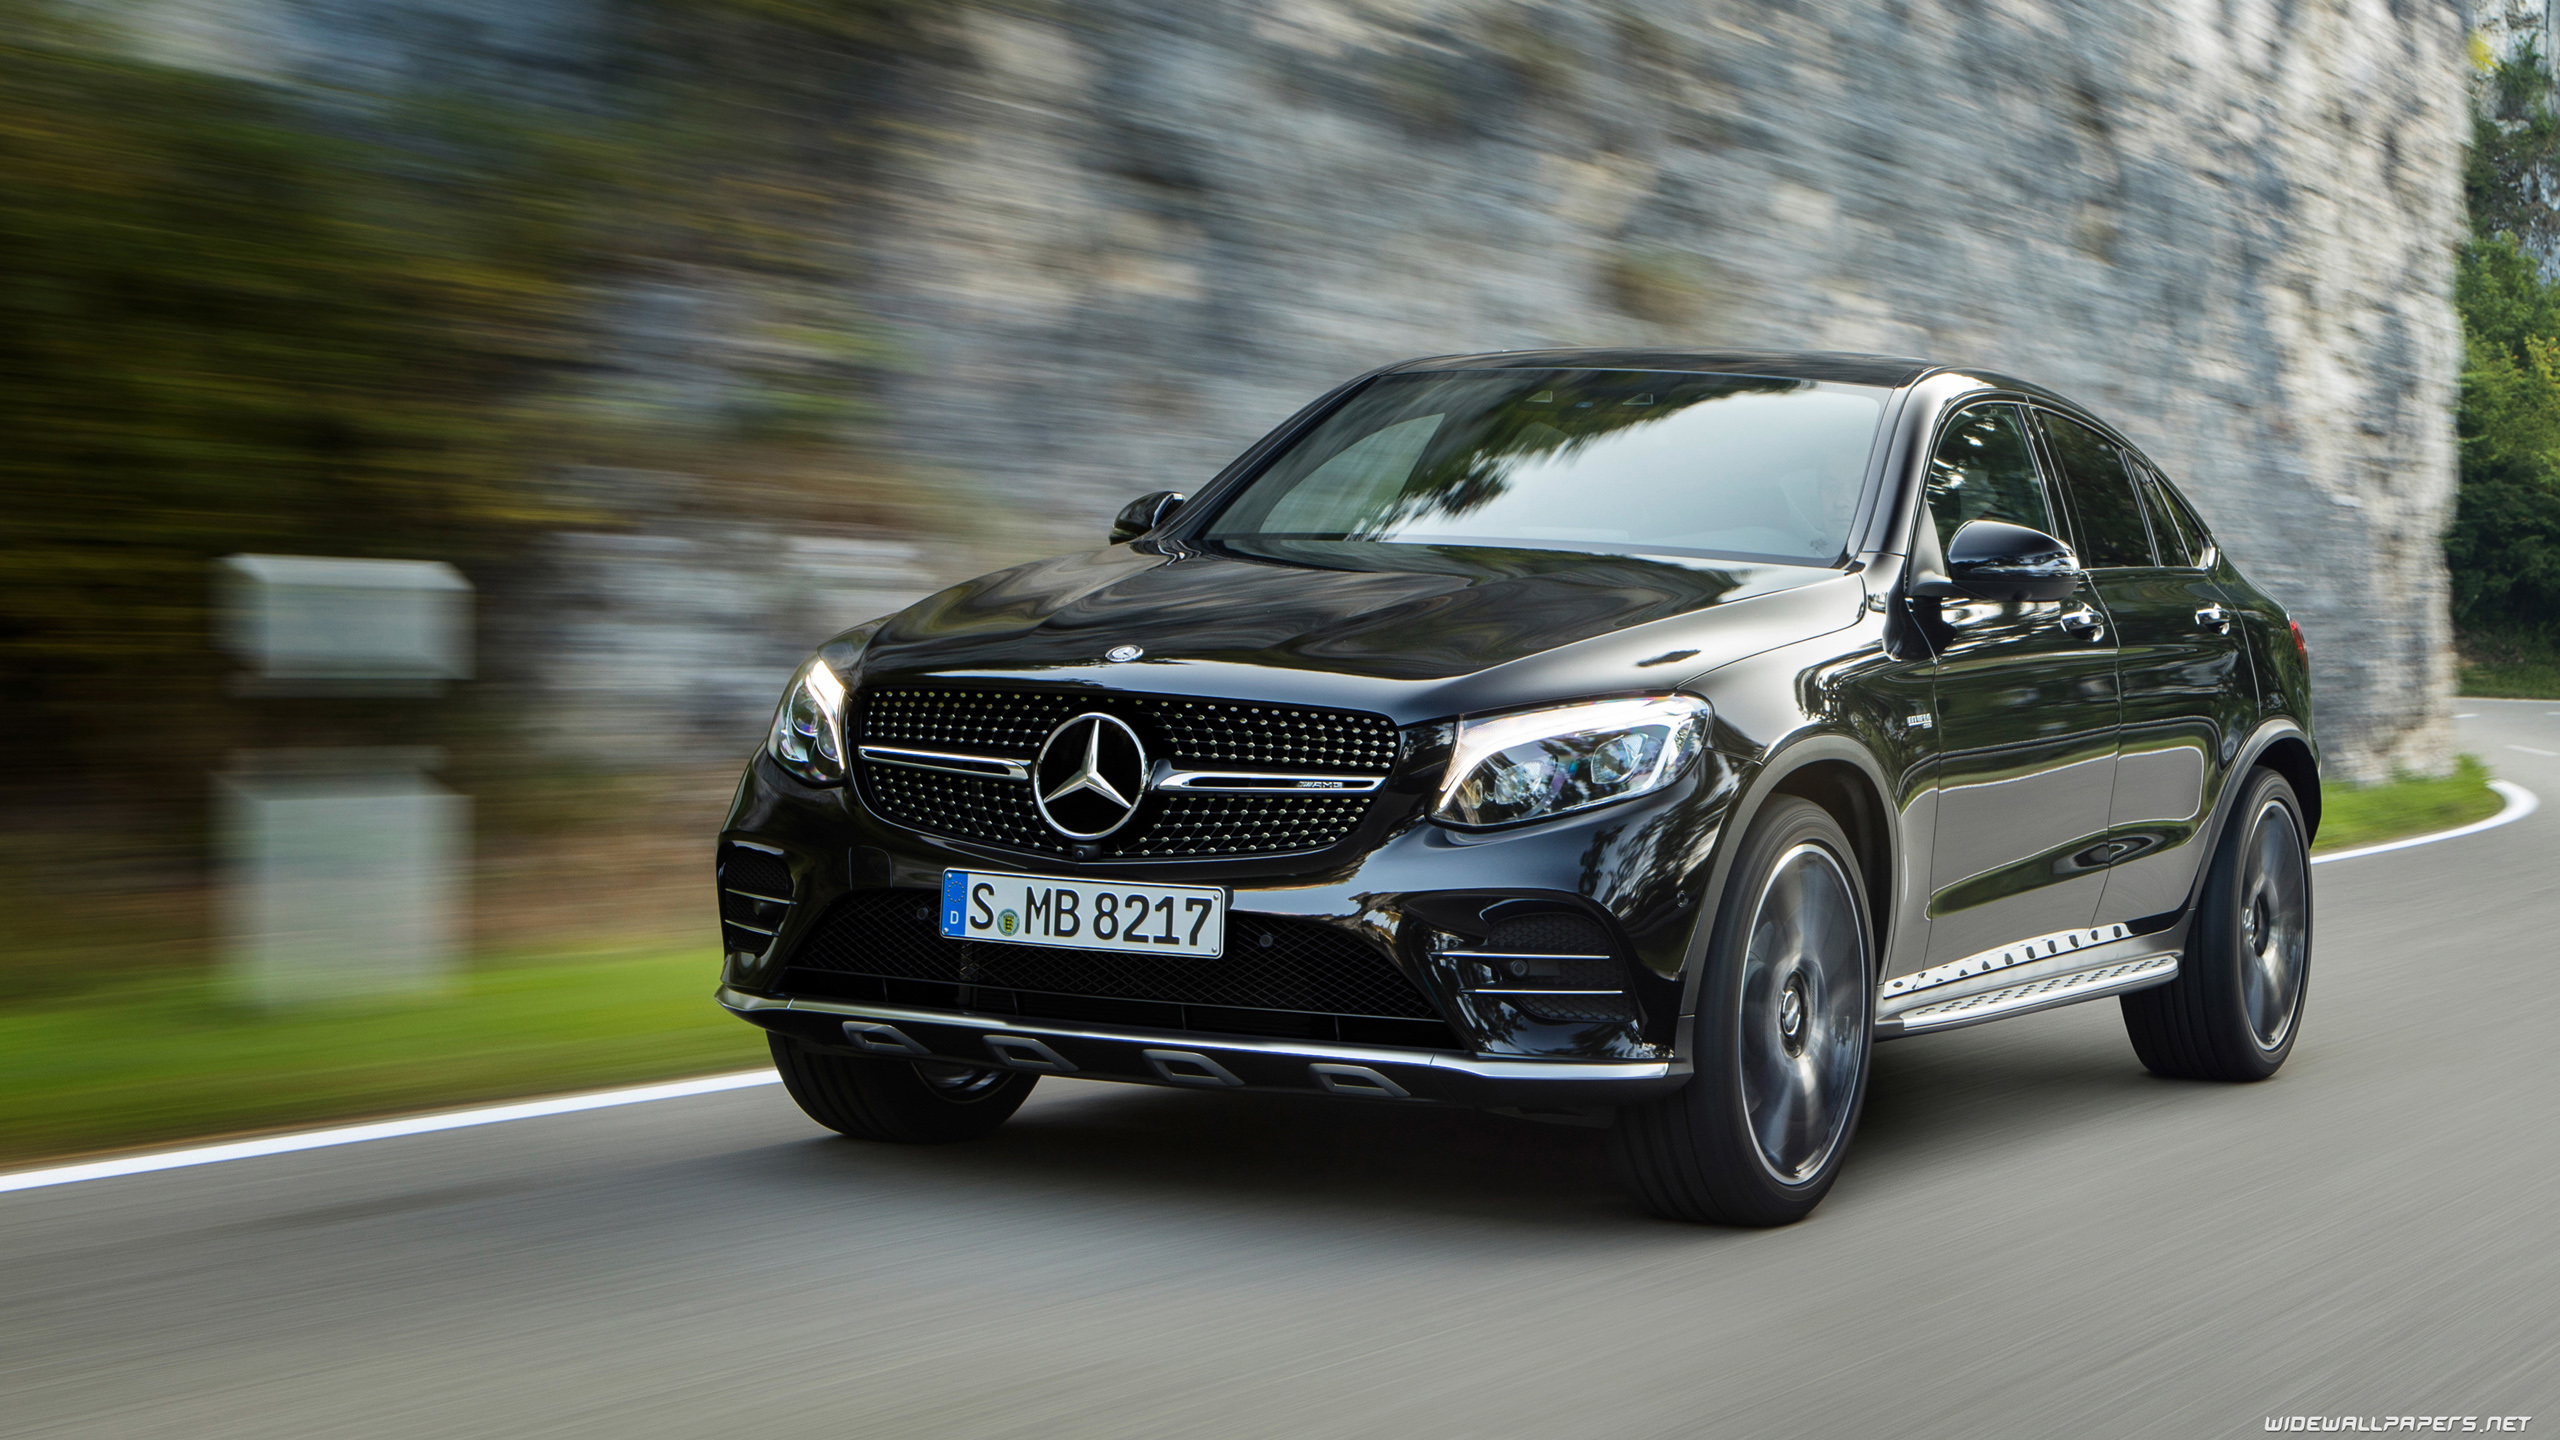 mercedes benz glc class coupe cars desktop wallpapers 4k ultra hd page 2. Black Bedroom Furniture Sets. Home Design Ideas